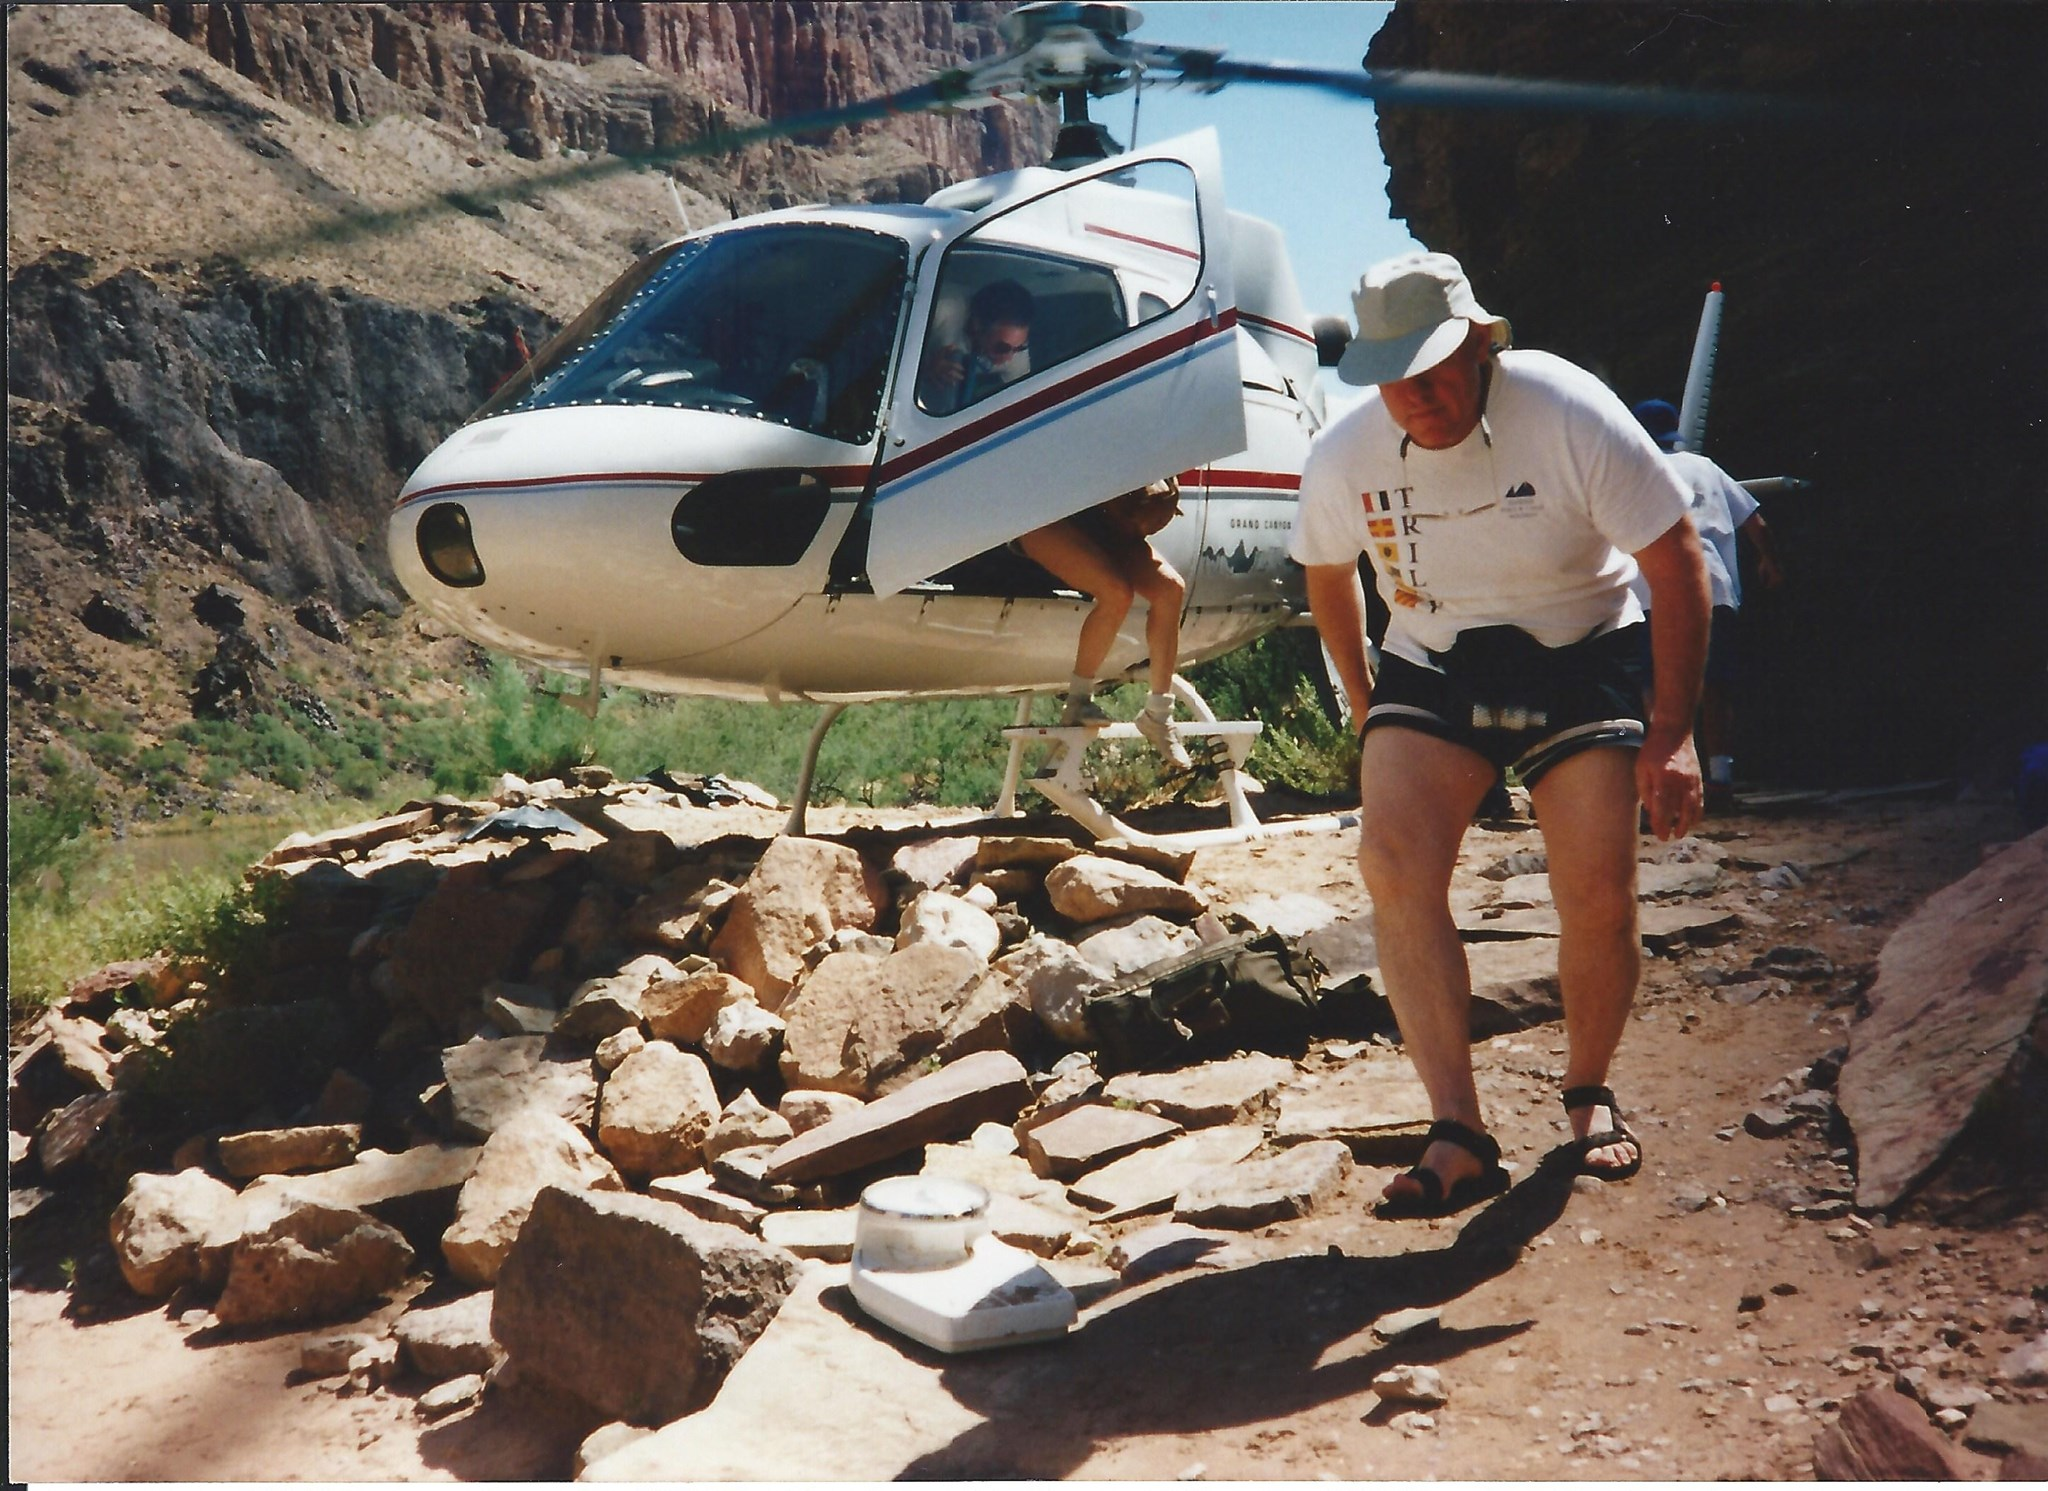 Mike getting off the helicopter in the Grand Canyon